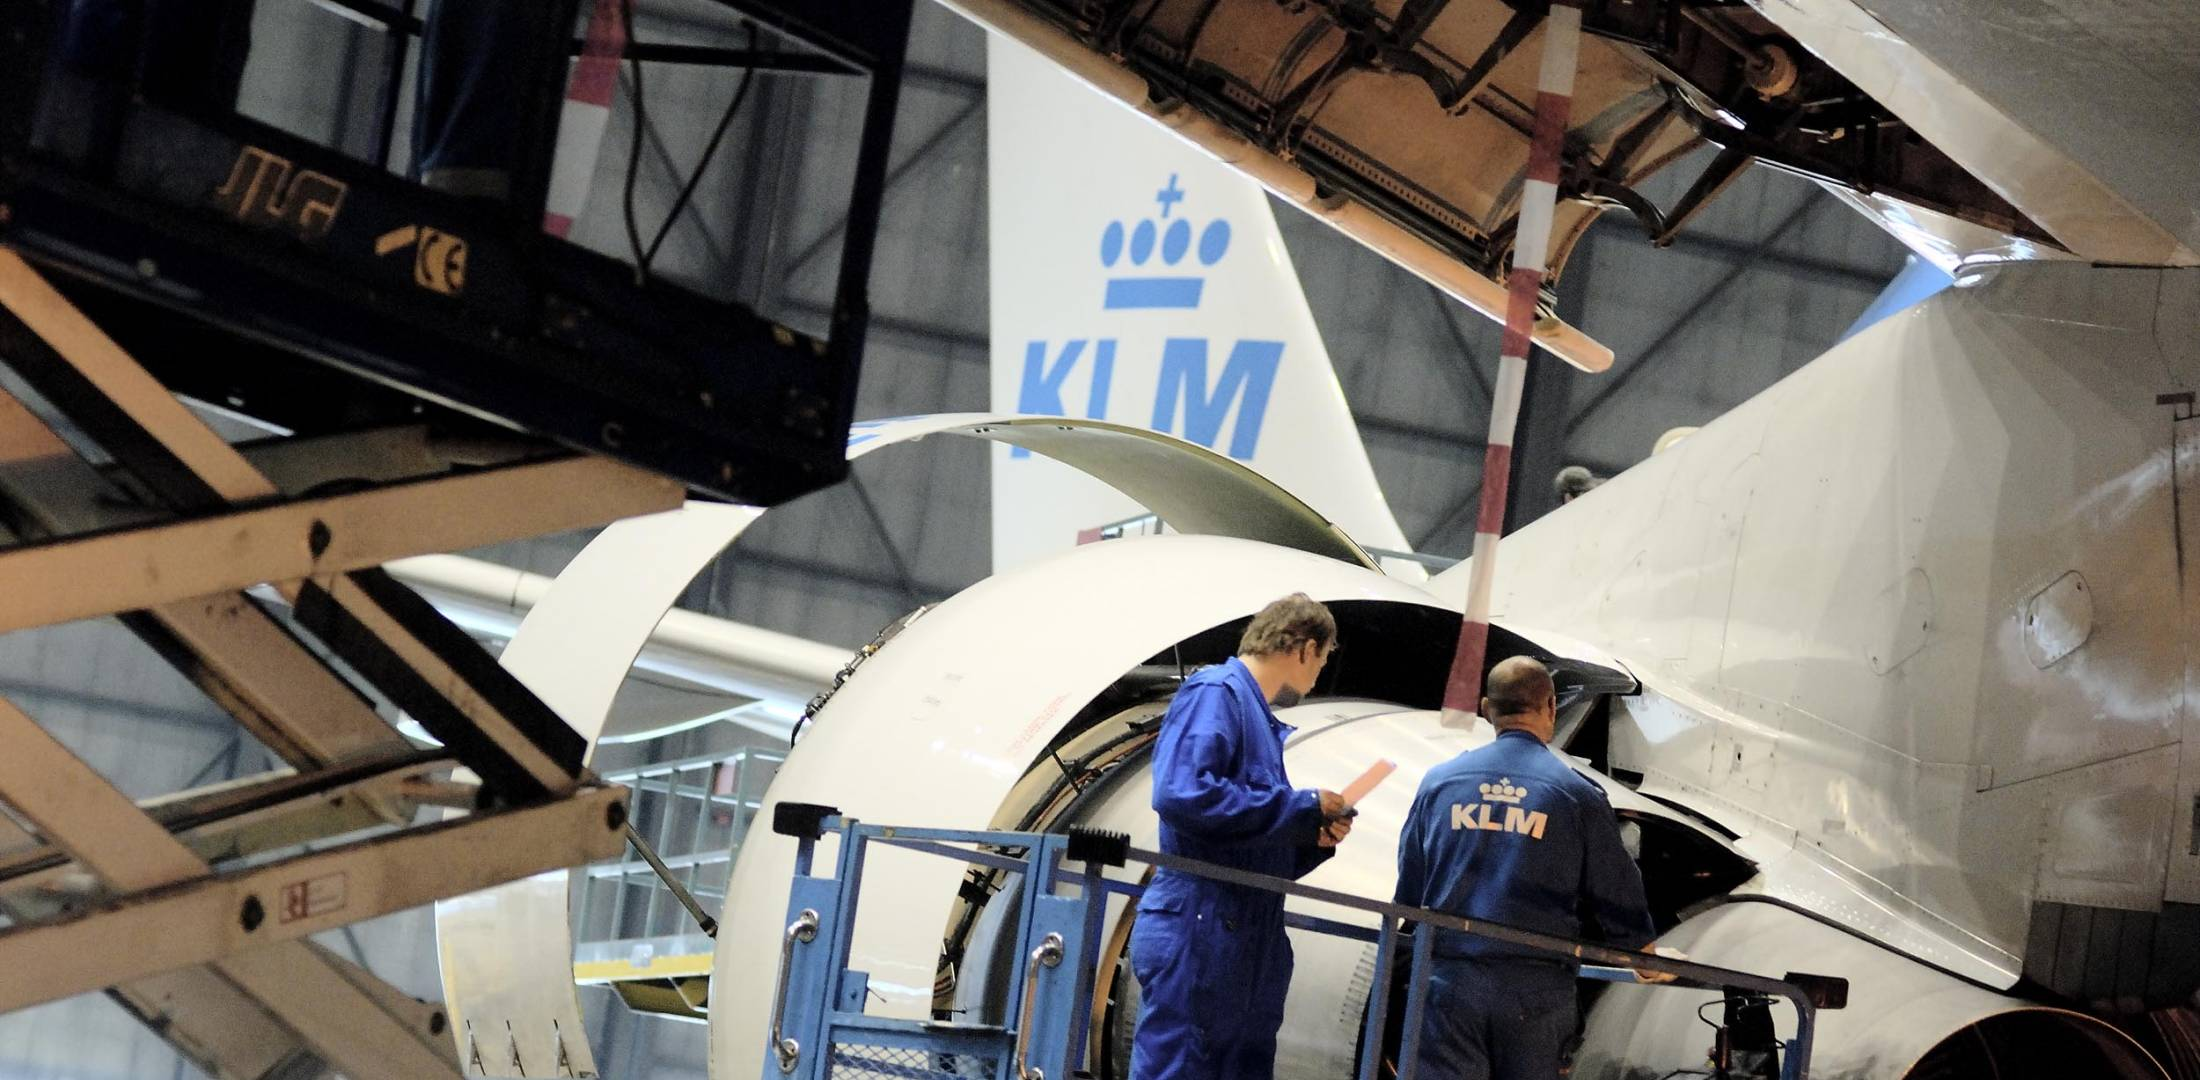 Air France KLM's maintenance, repair and overhaul operation still sees strong prospects in India despite recent struggles there.